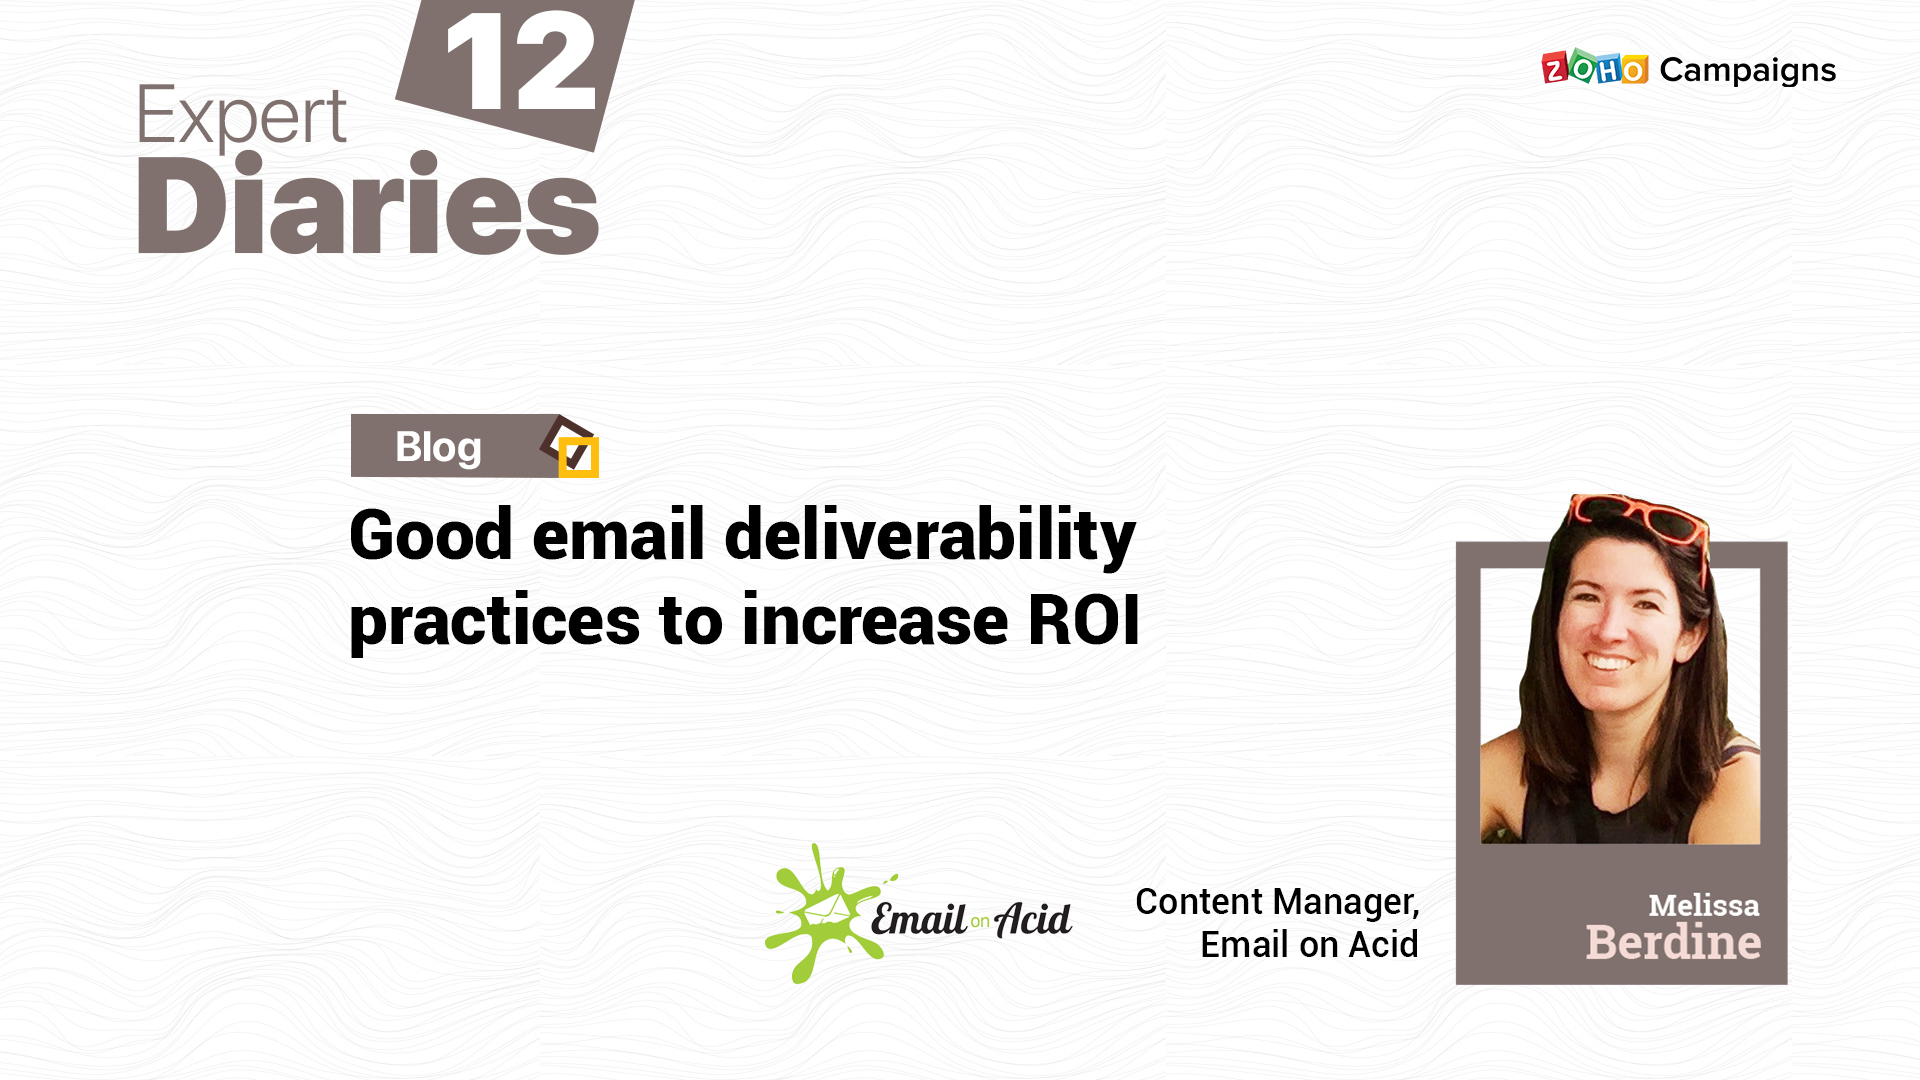 Good email deliverability practices to increase ROI